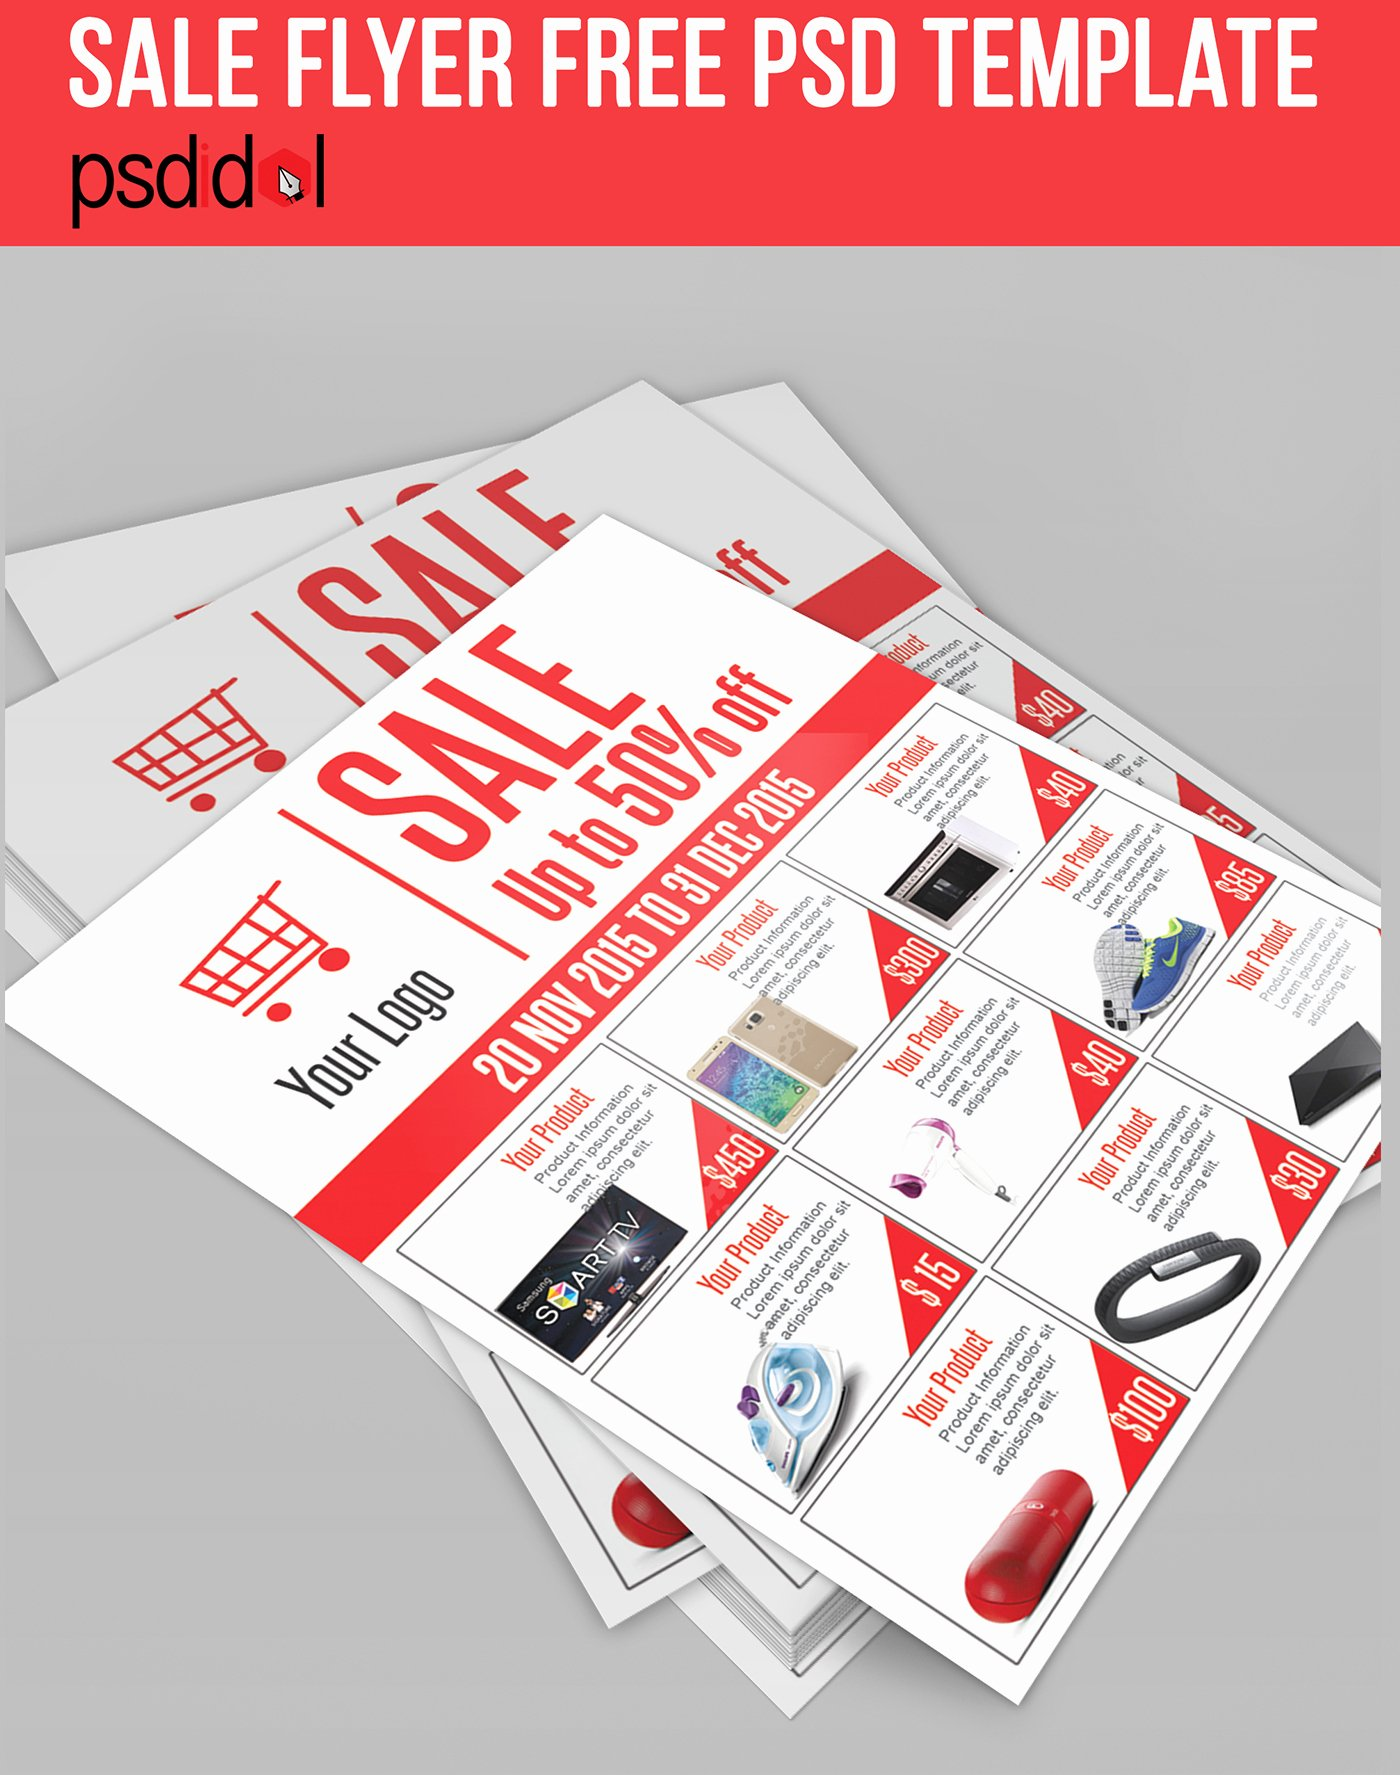 For Sale Flyer Template Lovely Sale Flyer Free Psd Template Download On Behance